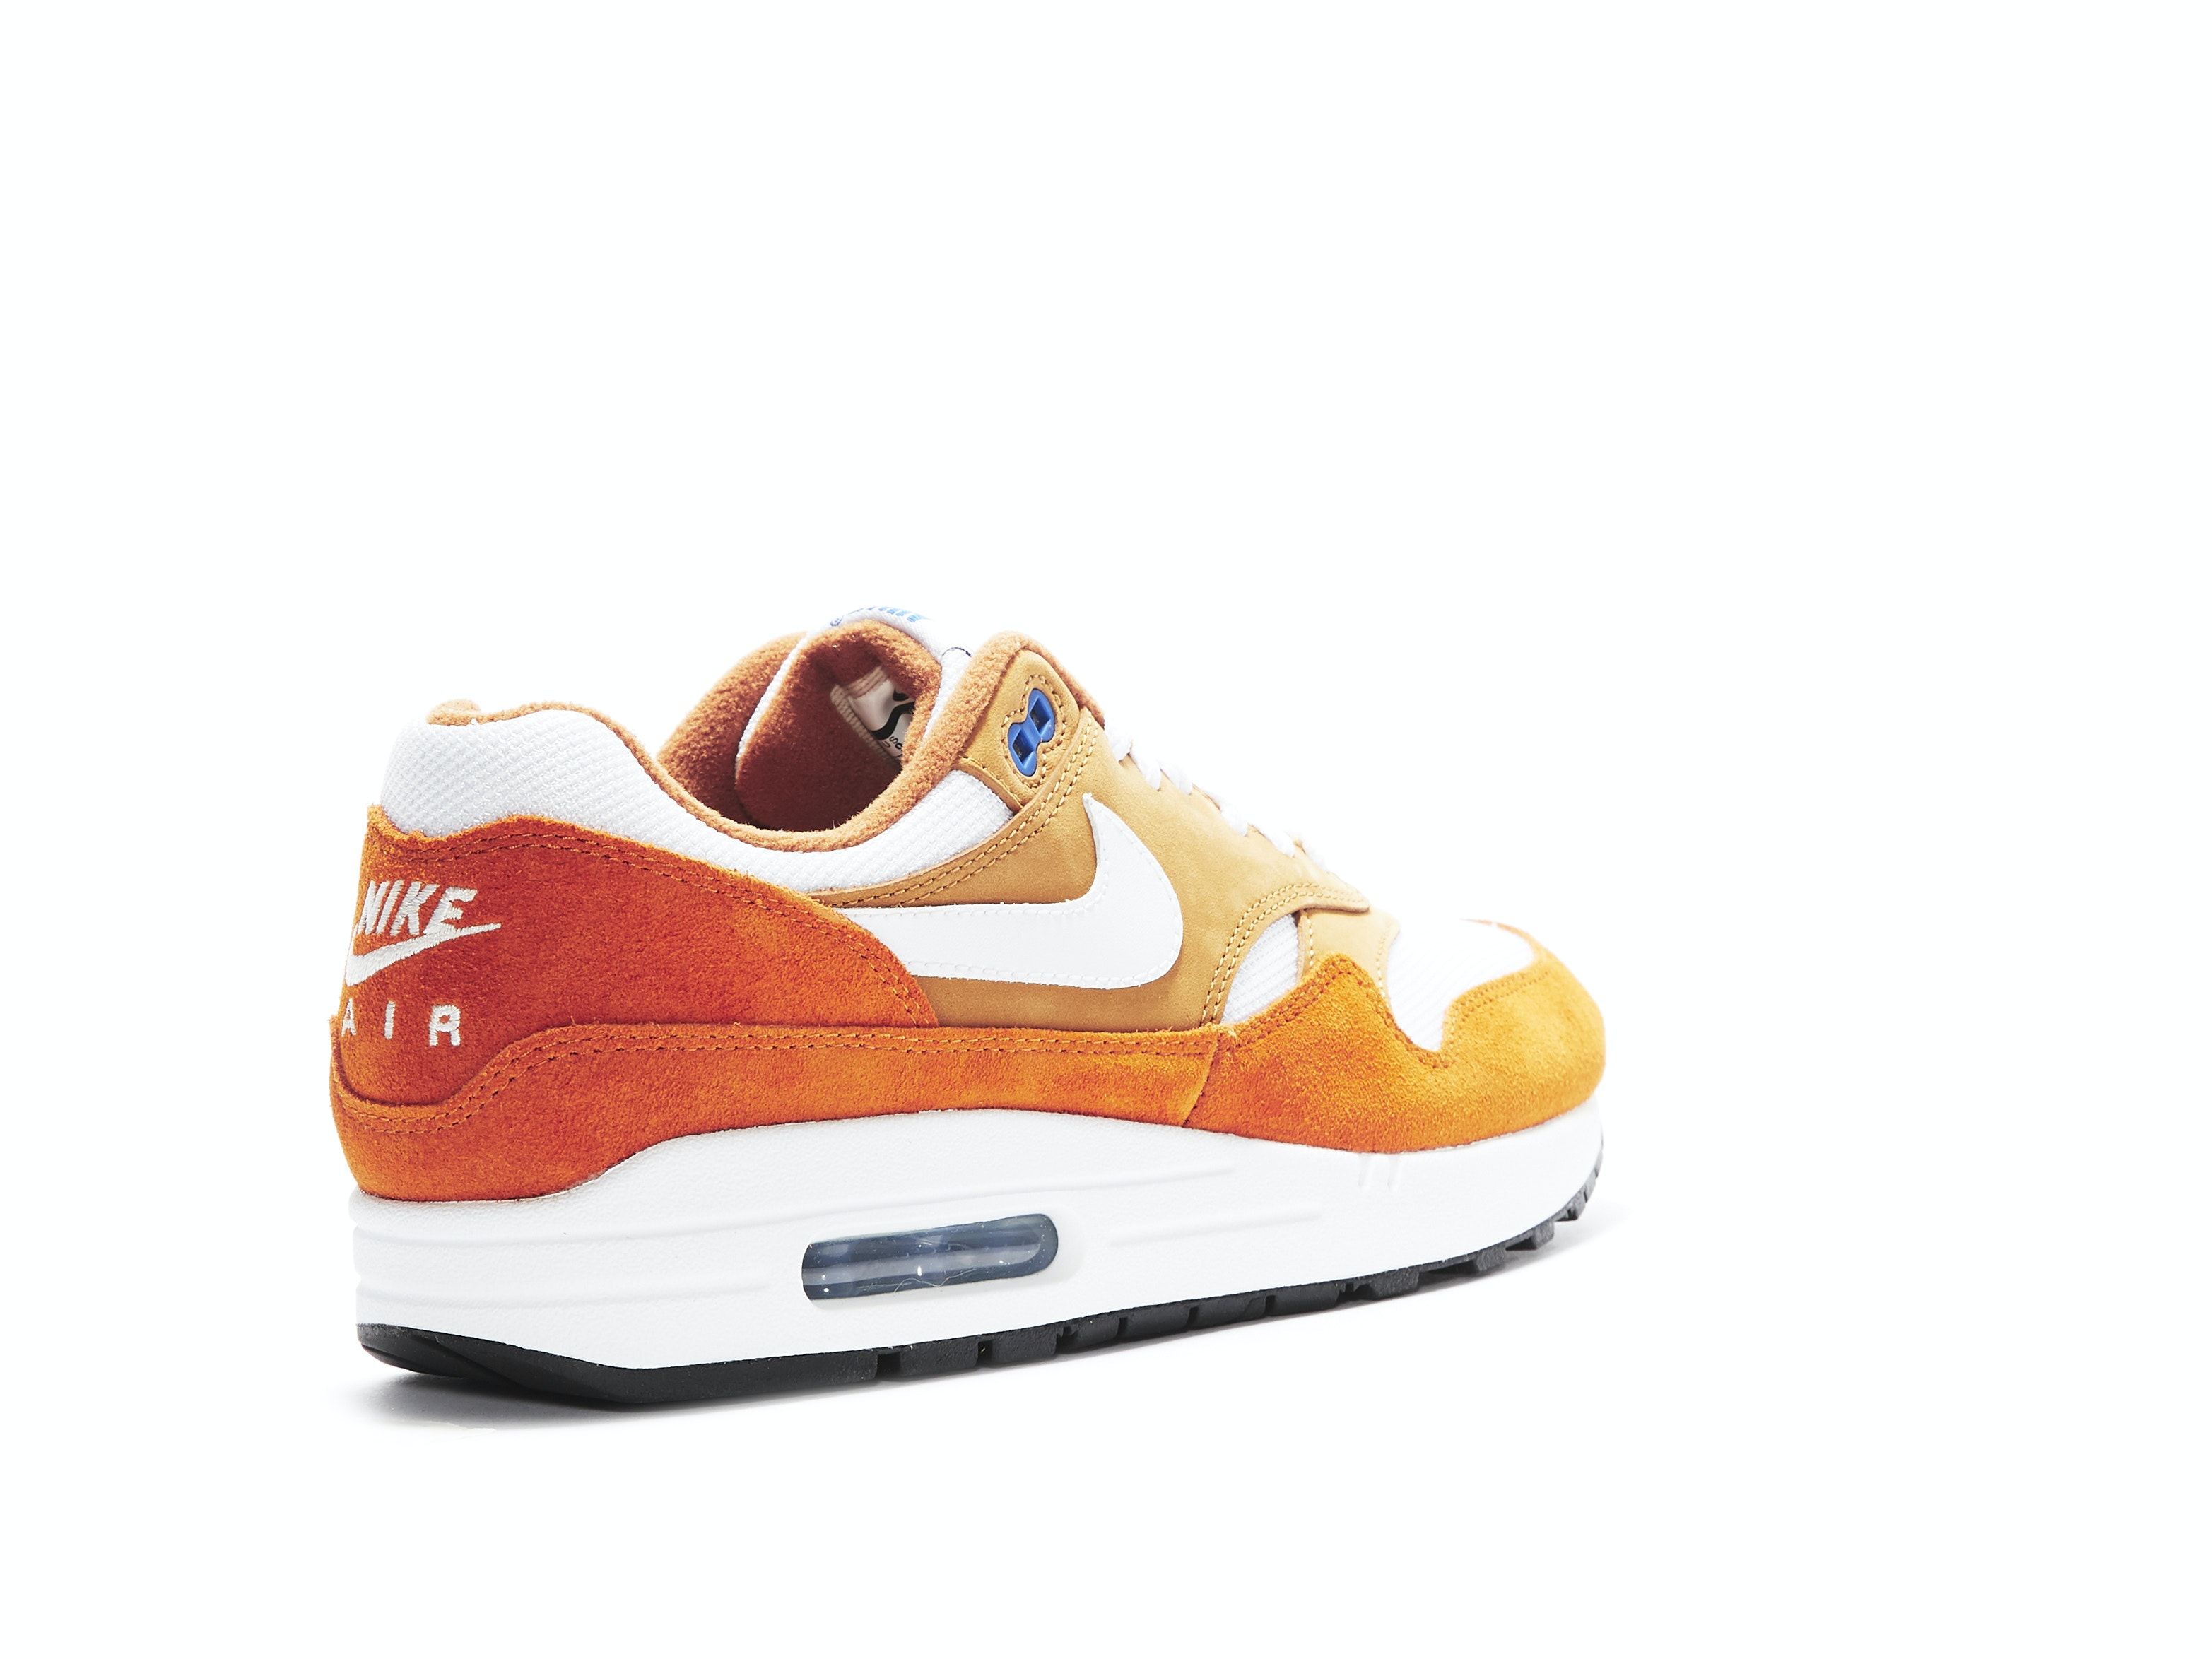 low priced e000f d08ce Air Max 1 Premium Retro Curry. 100% AuthenticSold out! Nike   908366-700